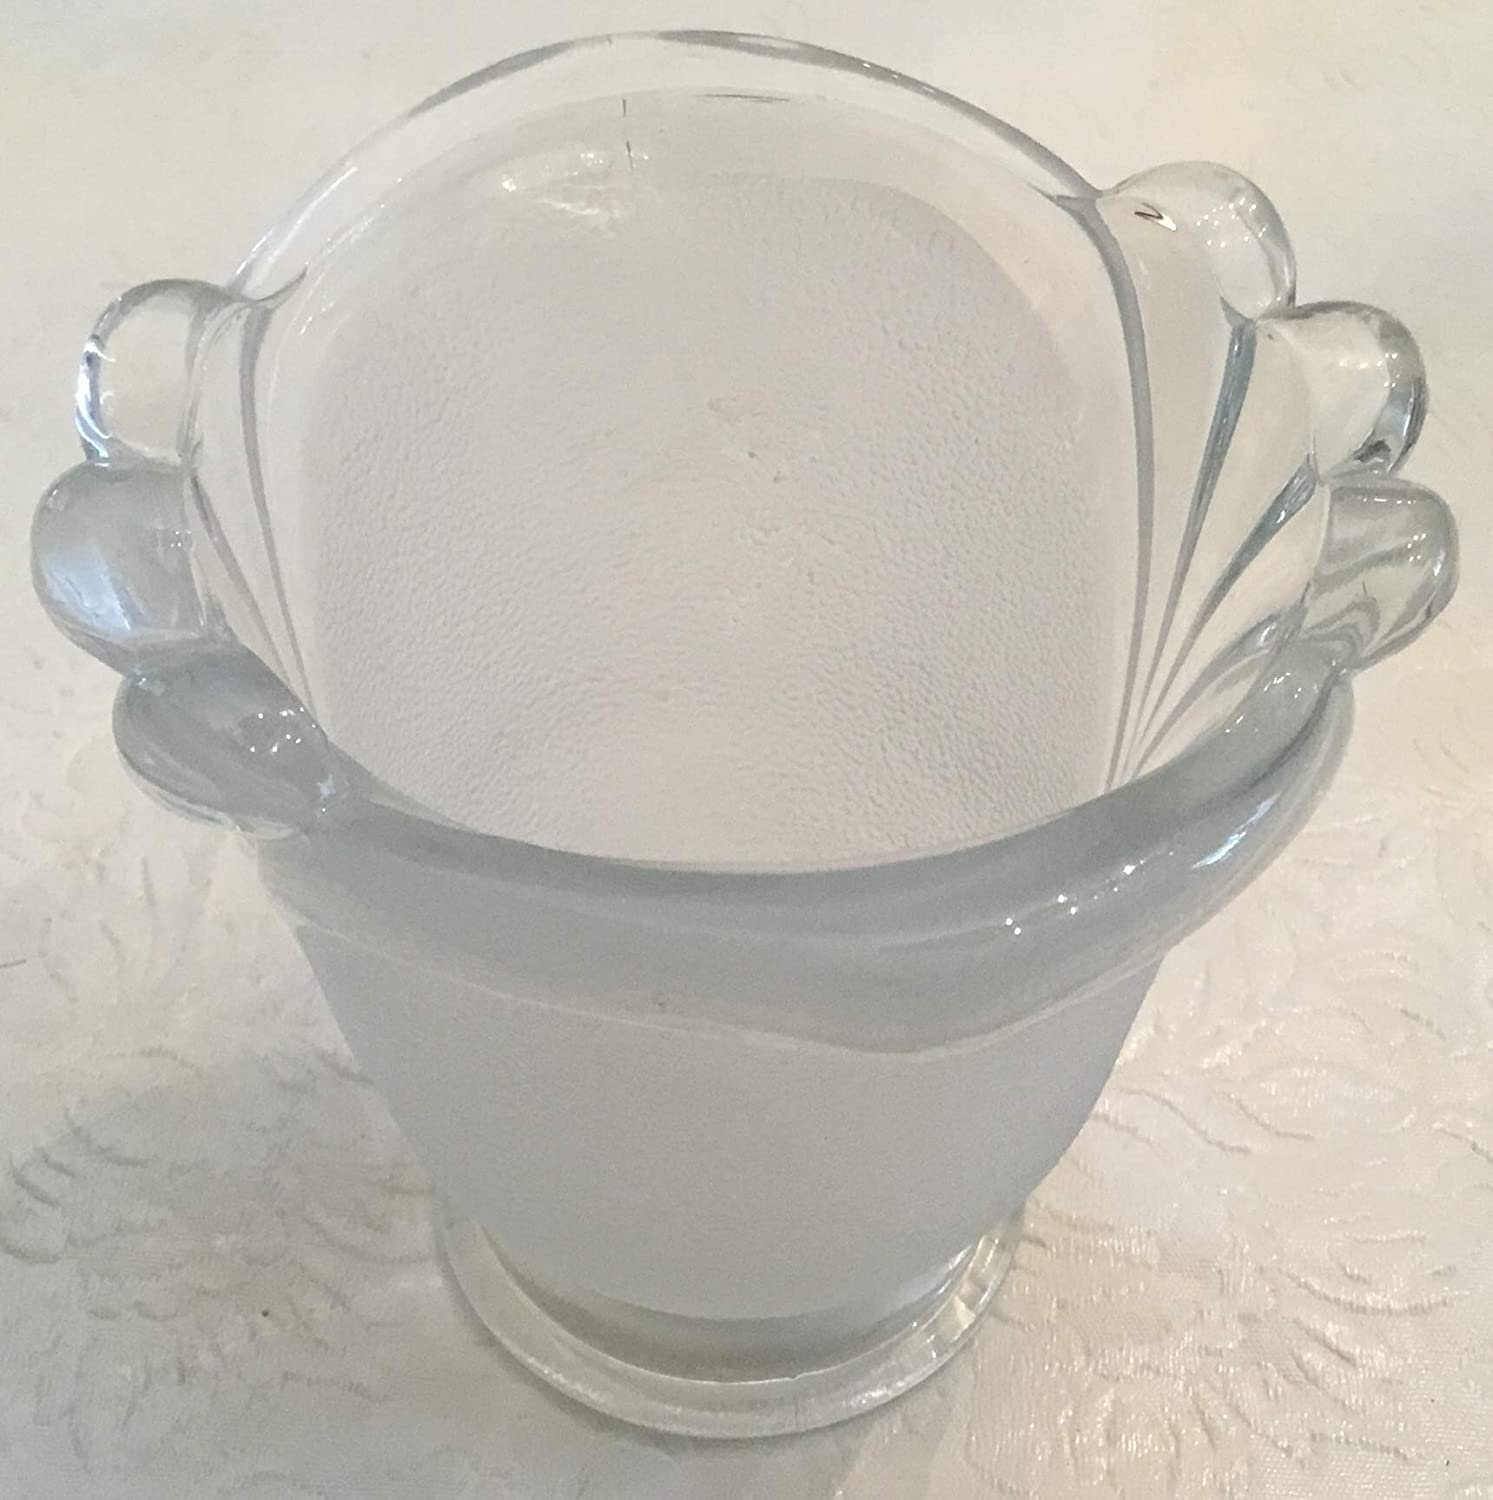 Lovely Retro Crystal Votive Candle Holder By Crystal Clear Glass At